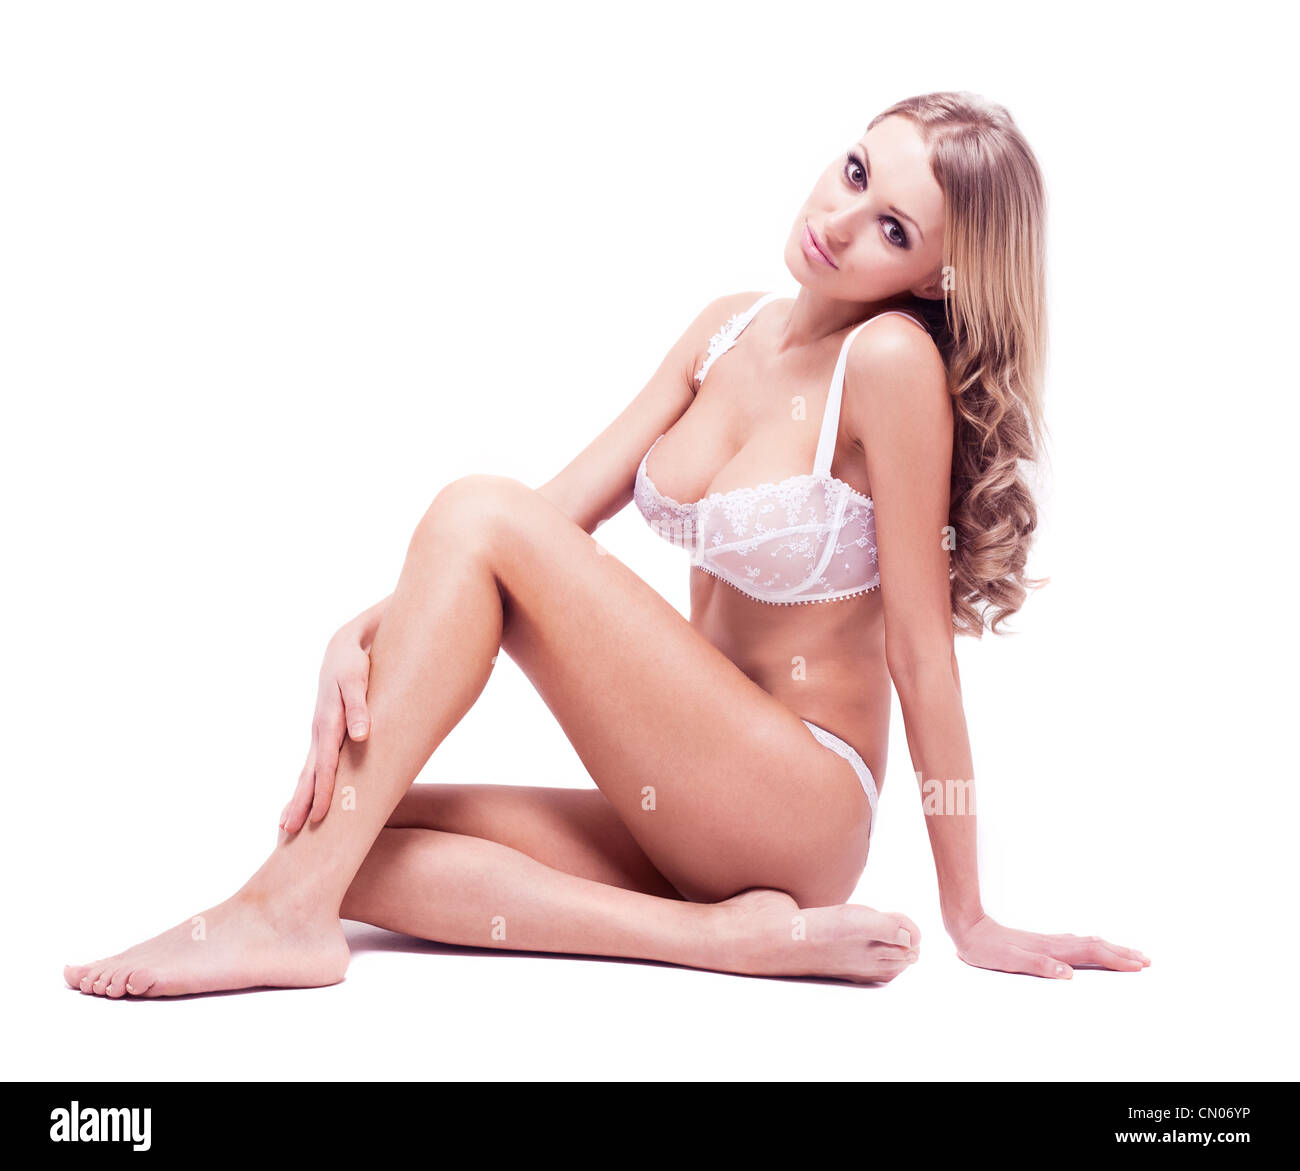 233b7a29f58d sexy young woman wearing underwear Stock Photo: 47333994 - Alamy